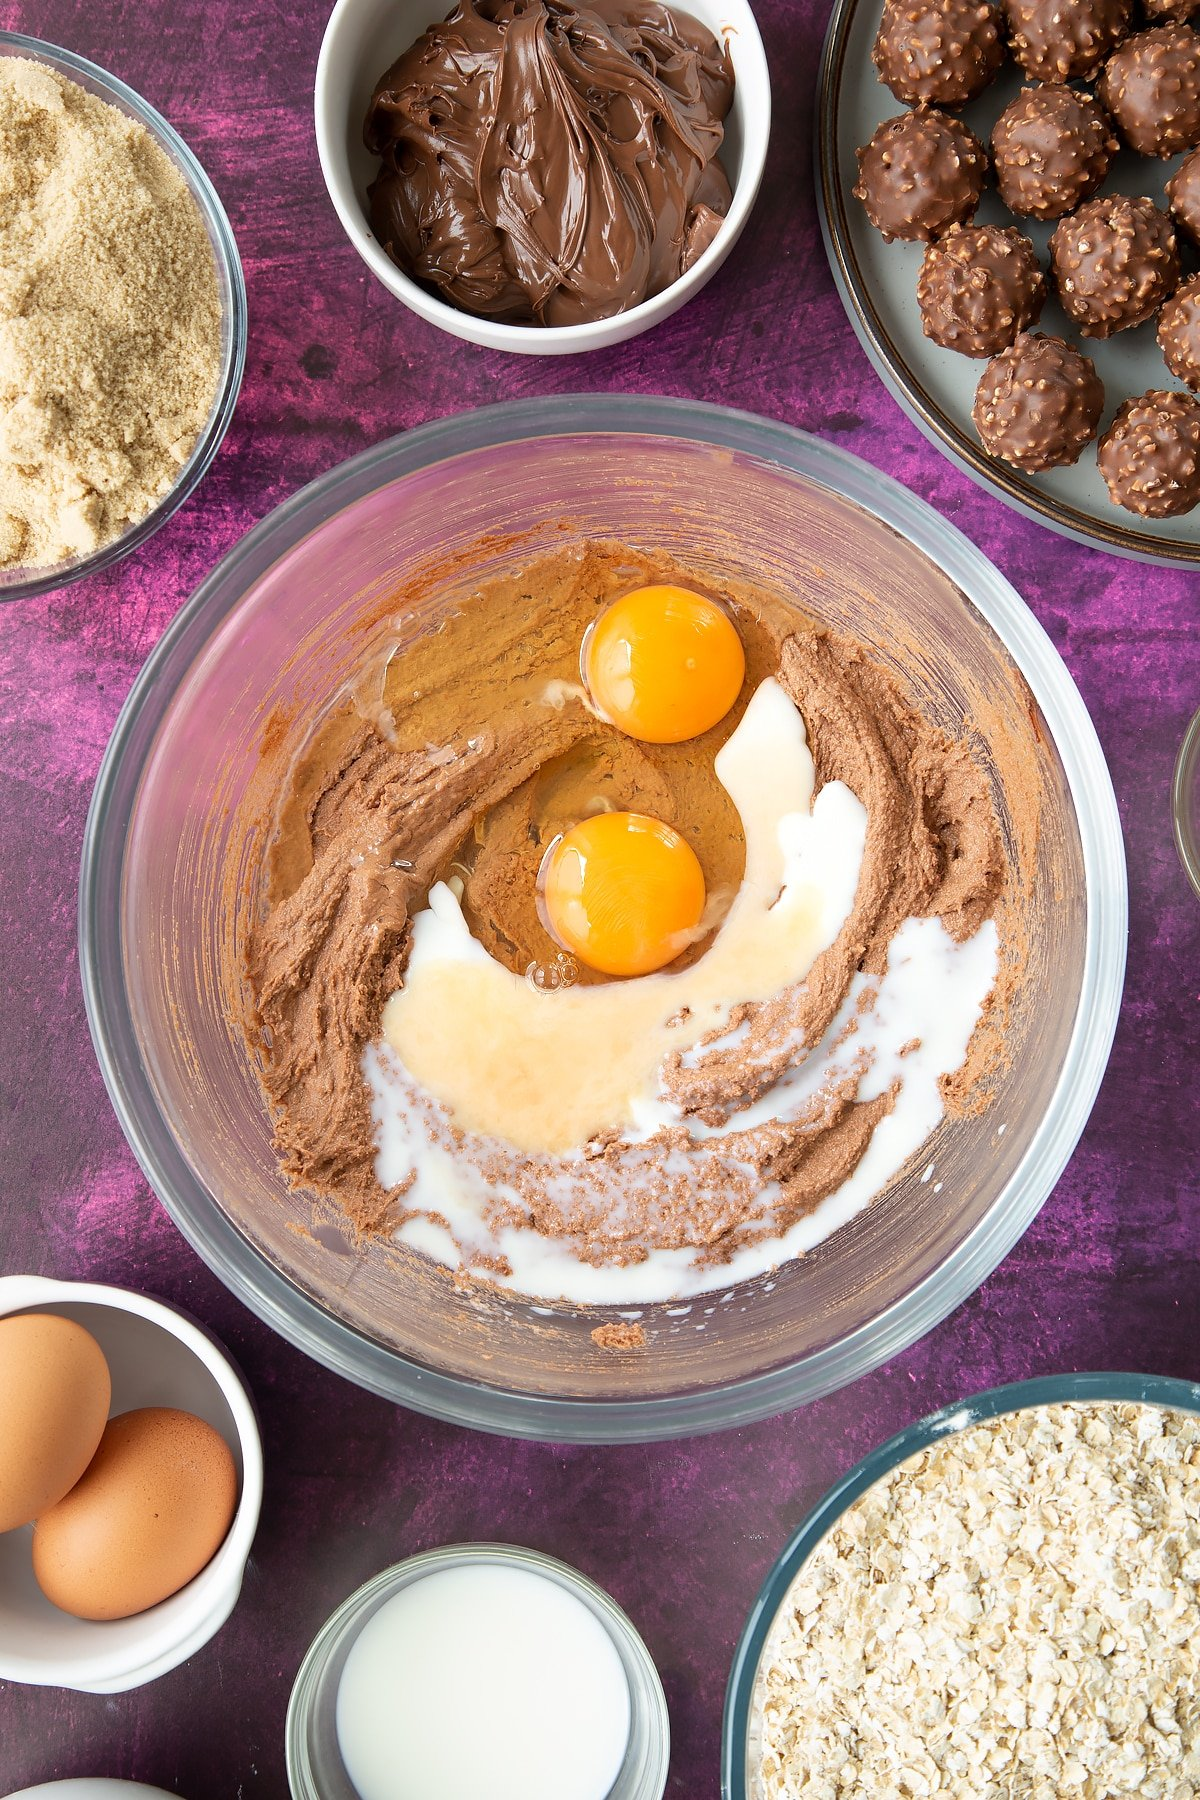 Soft brown sugar, Nutella and butter beaten together in a large mixing bowl with eggs and milk on top. Ingredients to make Ferrero Rocher cookies surround the bowl.